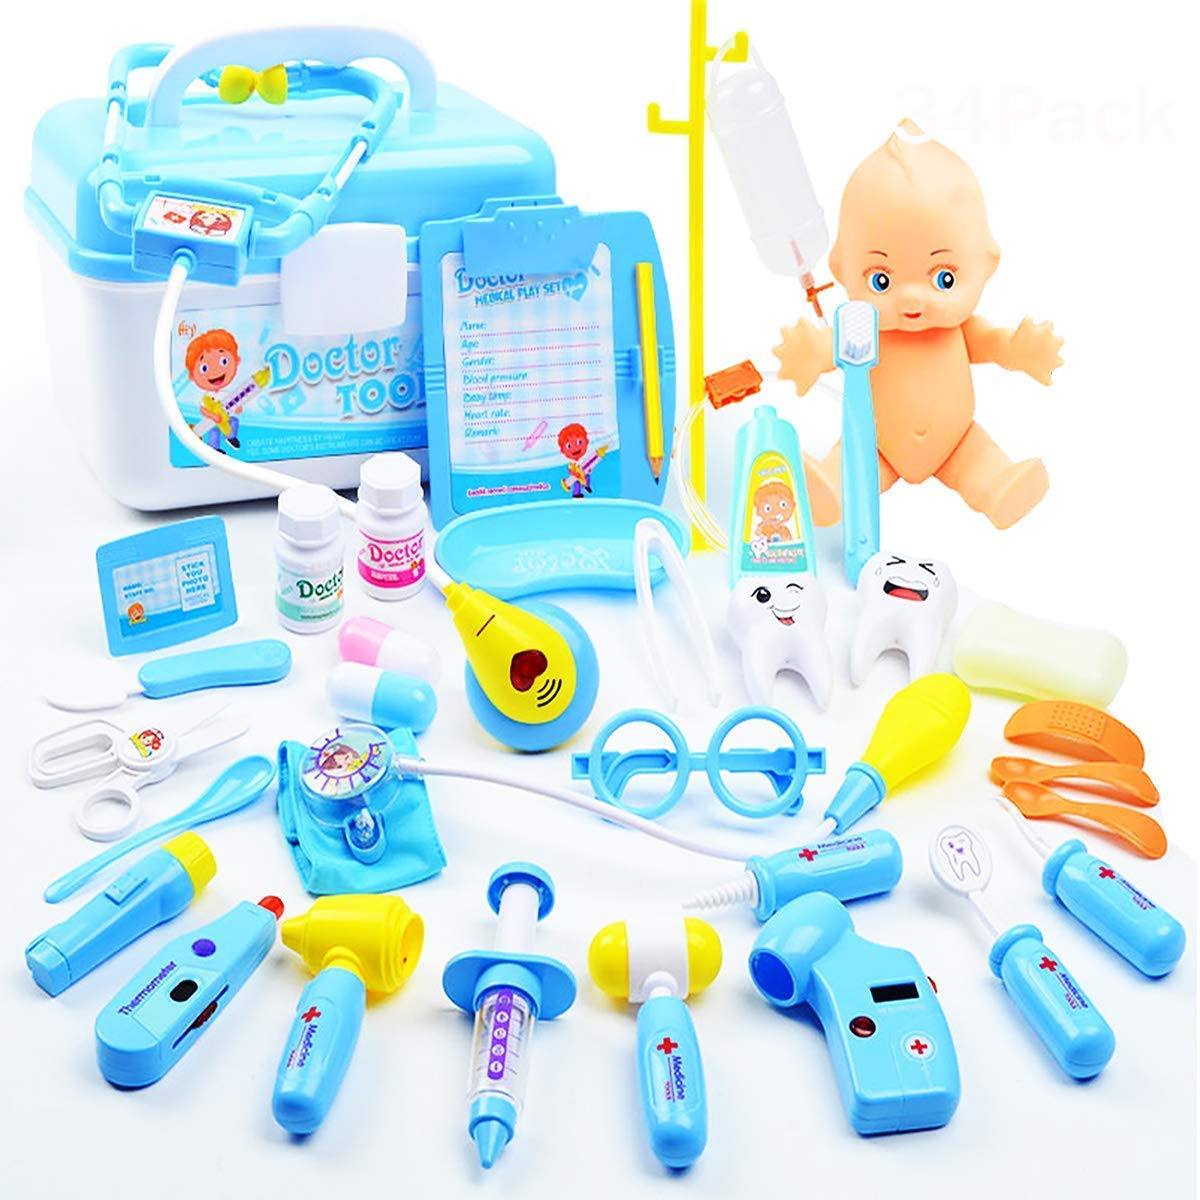 Fstop Labs 34 Pack Set Kids Doctor Kit Play Toy, Pretend Play Dentist Medical Kit for Kids, Electronic Stethoscope Dentist Medical Kit Gifts Boy & Girl Educational Learning Role Play Random Style